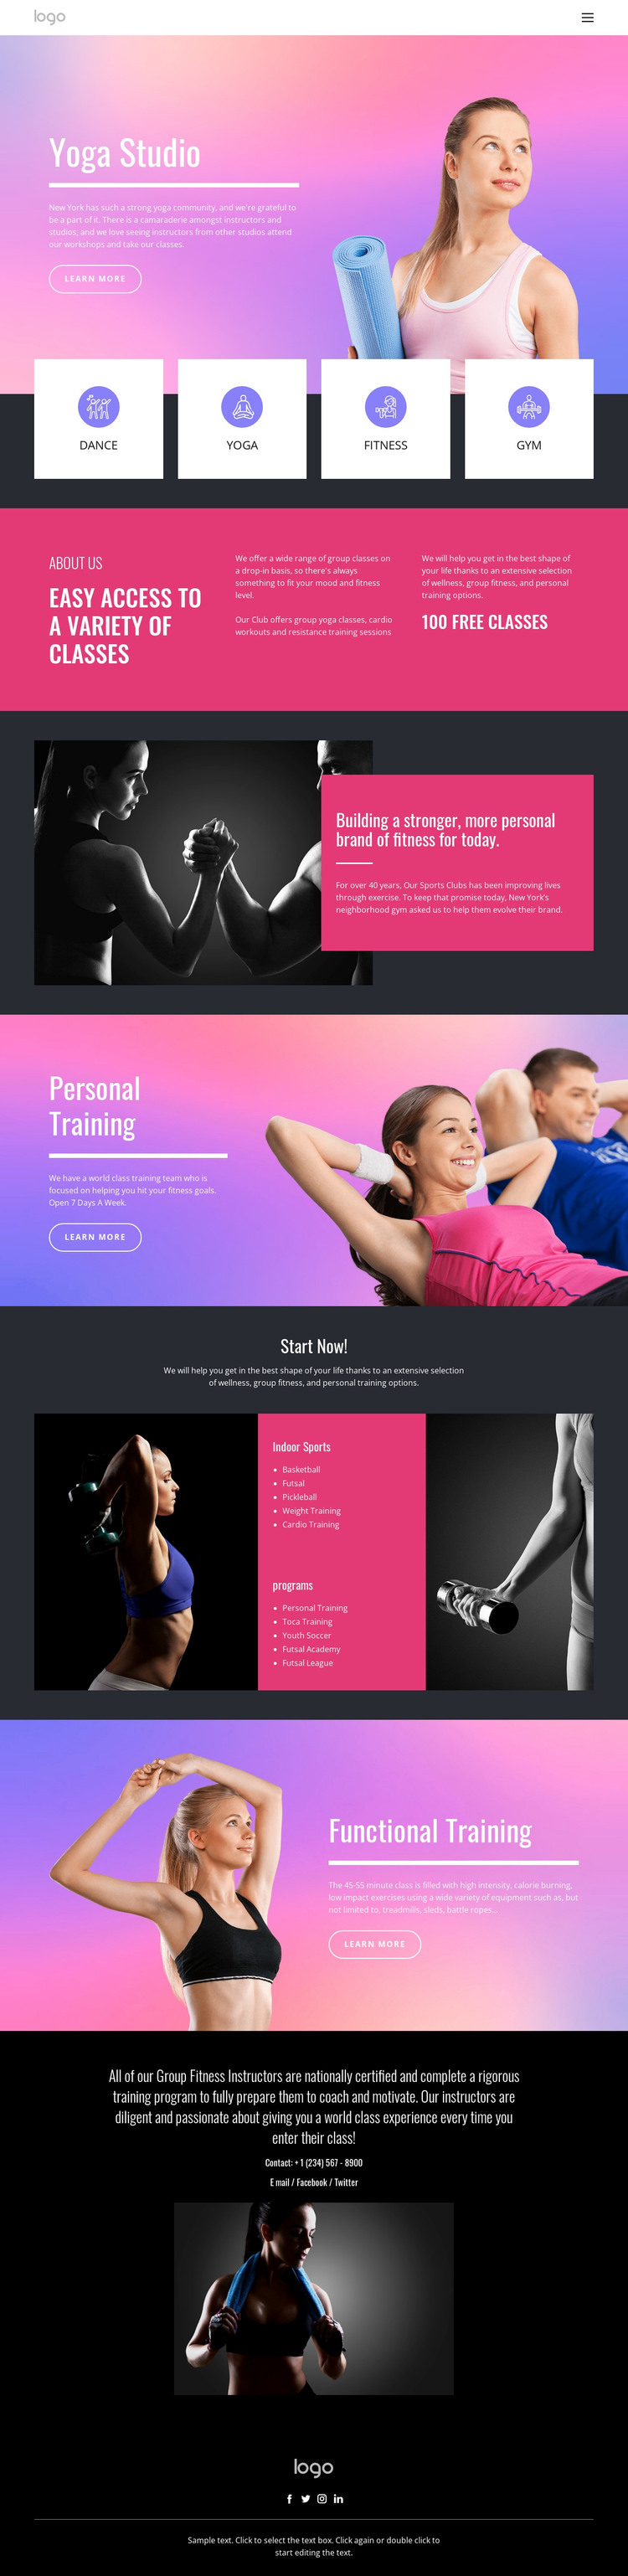 Wellness practice for self-inquiry Woocommerce Theme